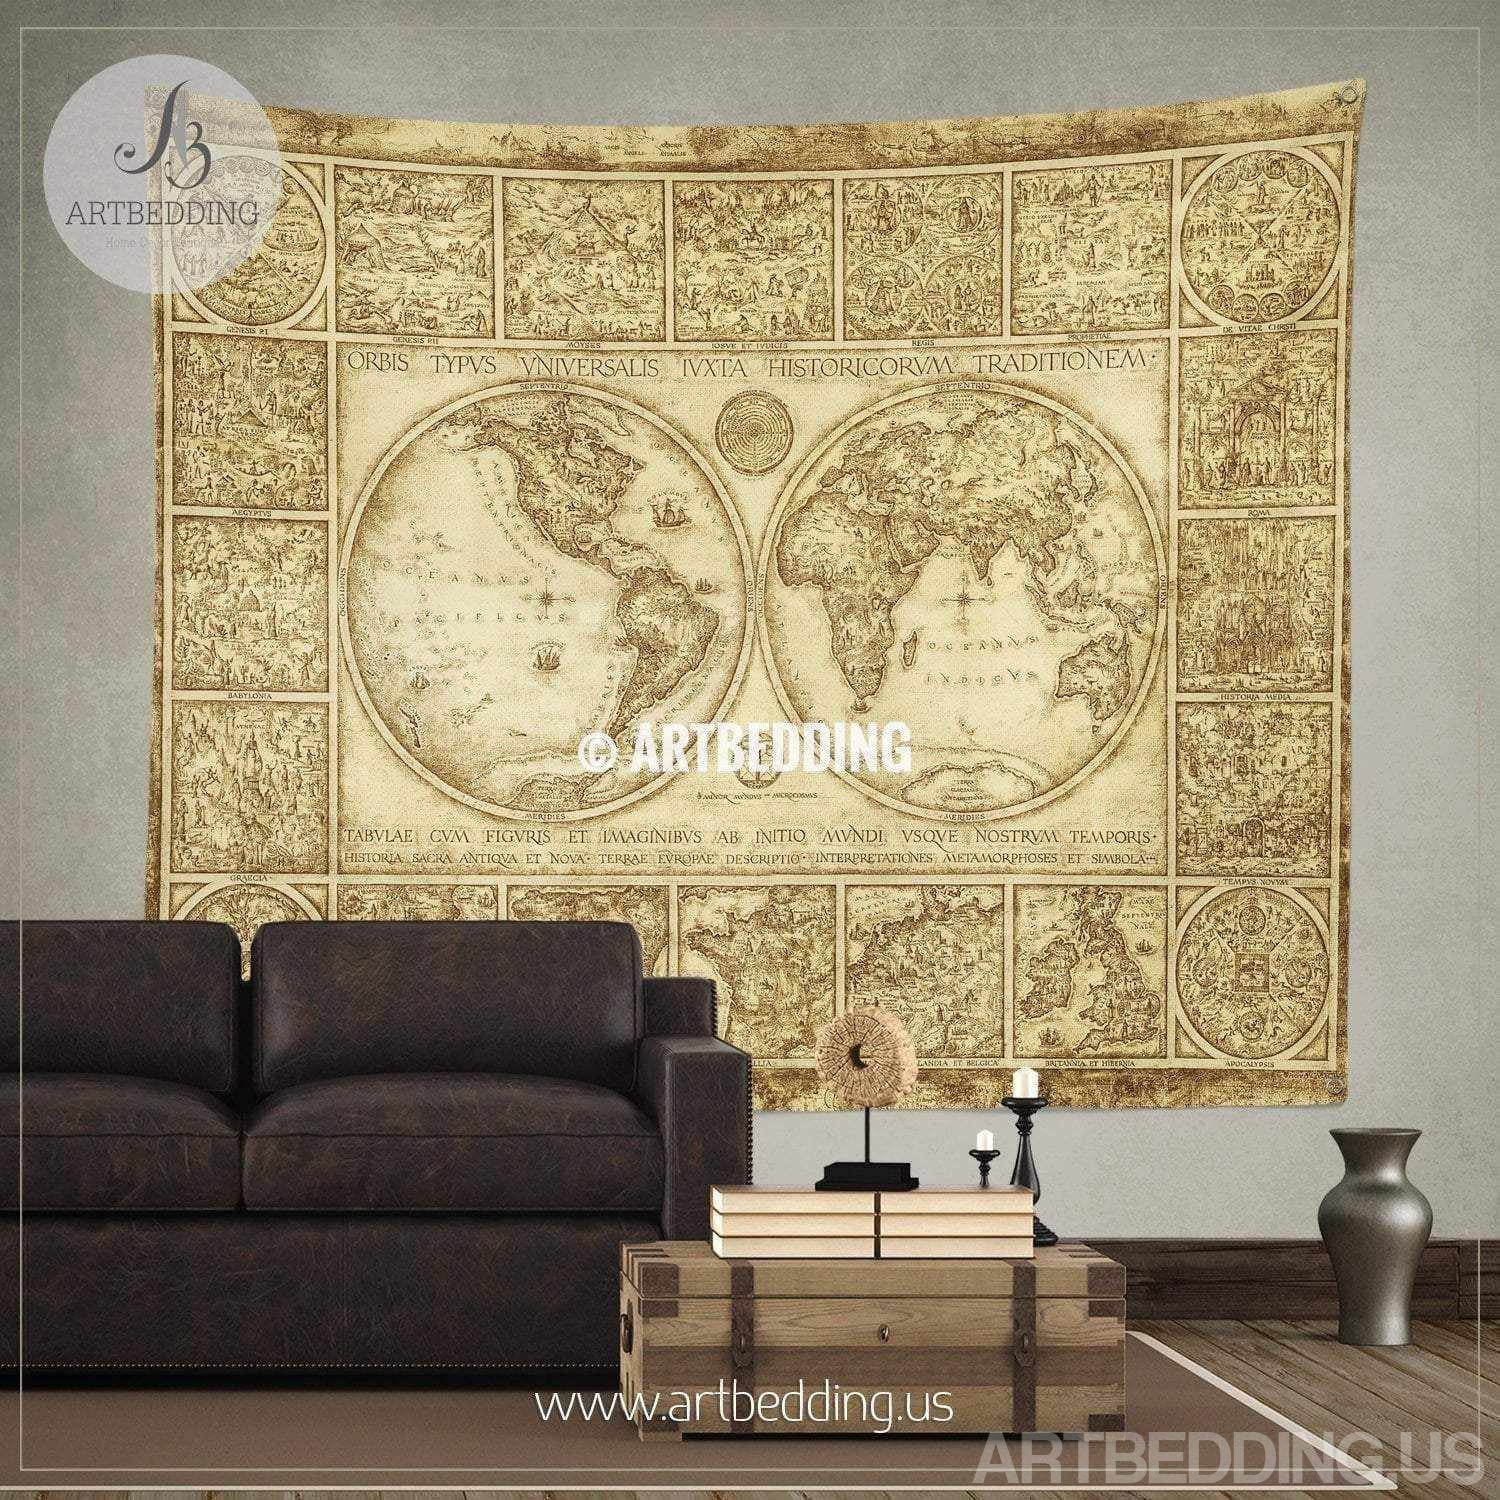 Vintage world map wall tapestry, old world map wall hanging - ARTBEDDING